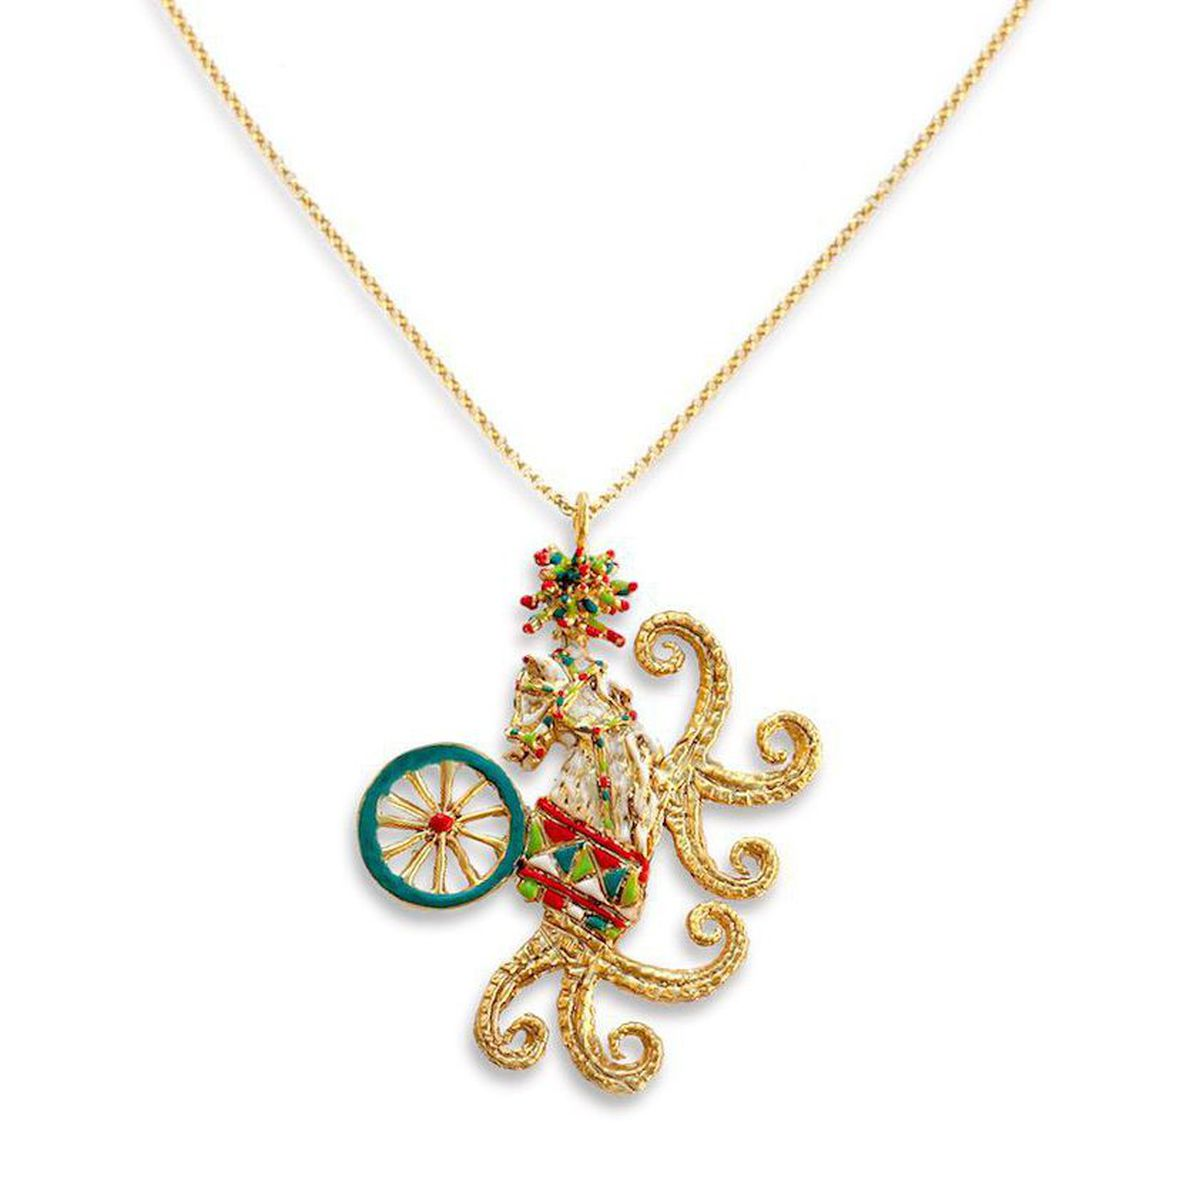 SICILIAN CARAVAN NECKLACE J-P80 Gold GIULIANAdiFRANCO